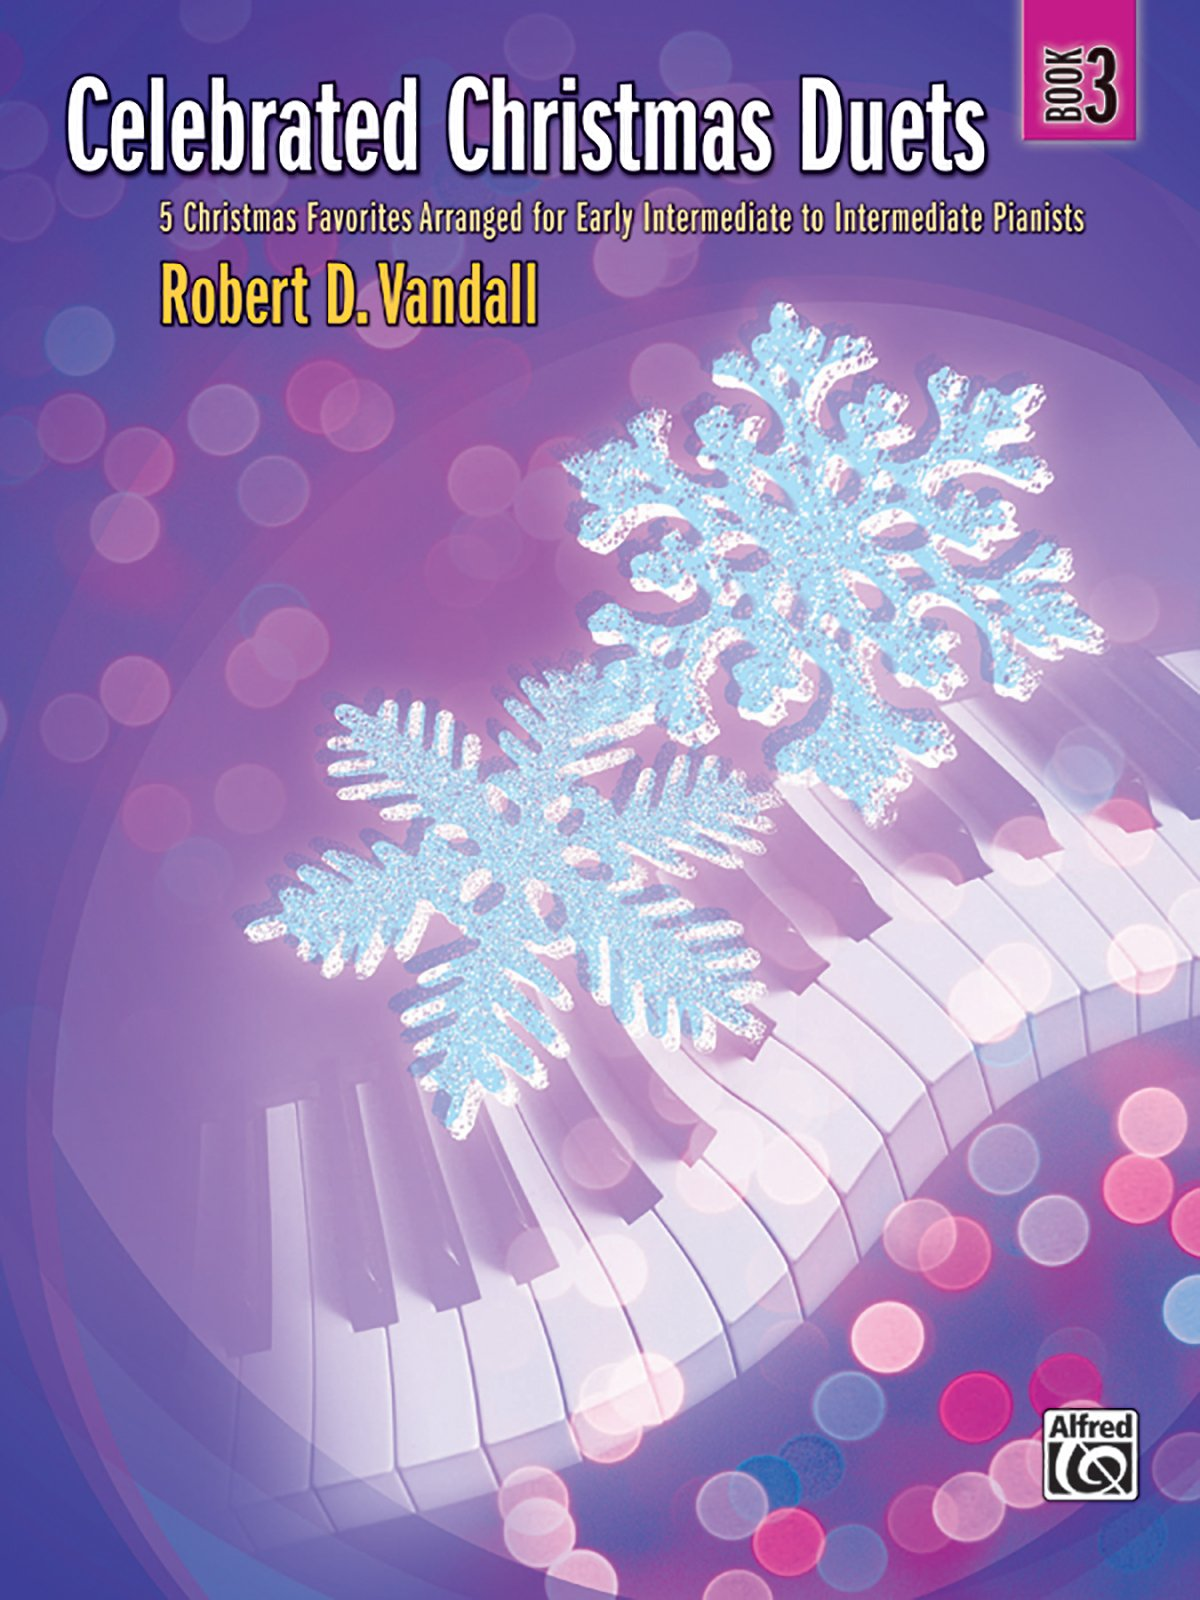 Read Online Celebrated Christmas Duets, Bk 3: 5 Christmas Favorites Arranged for Early Intermediate to Intermediate Pianists pdf